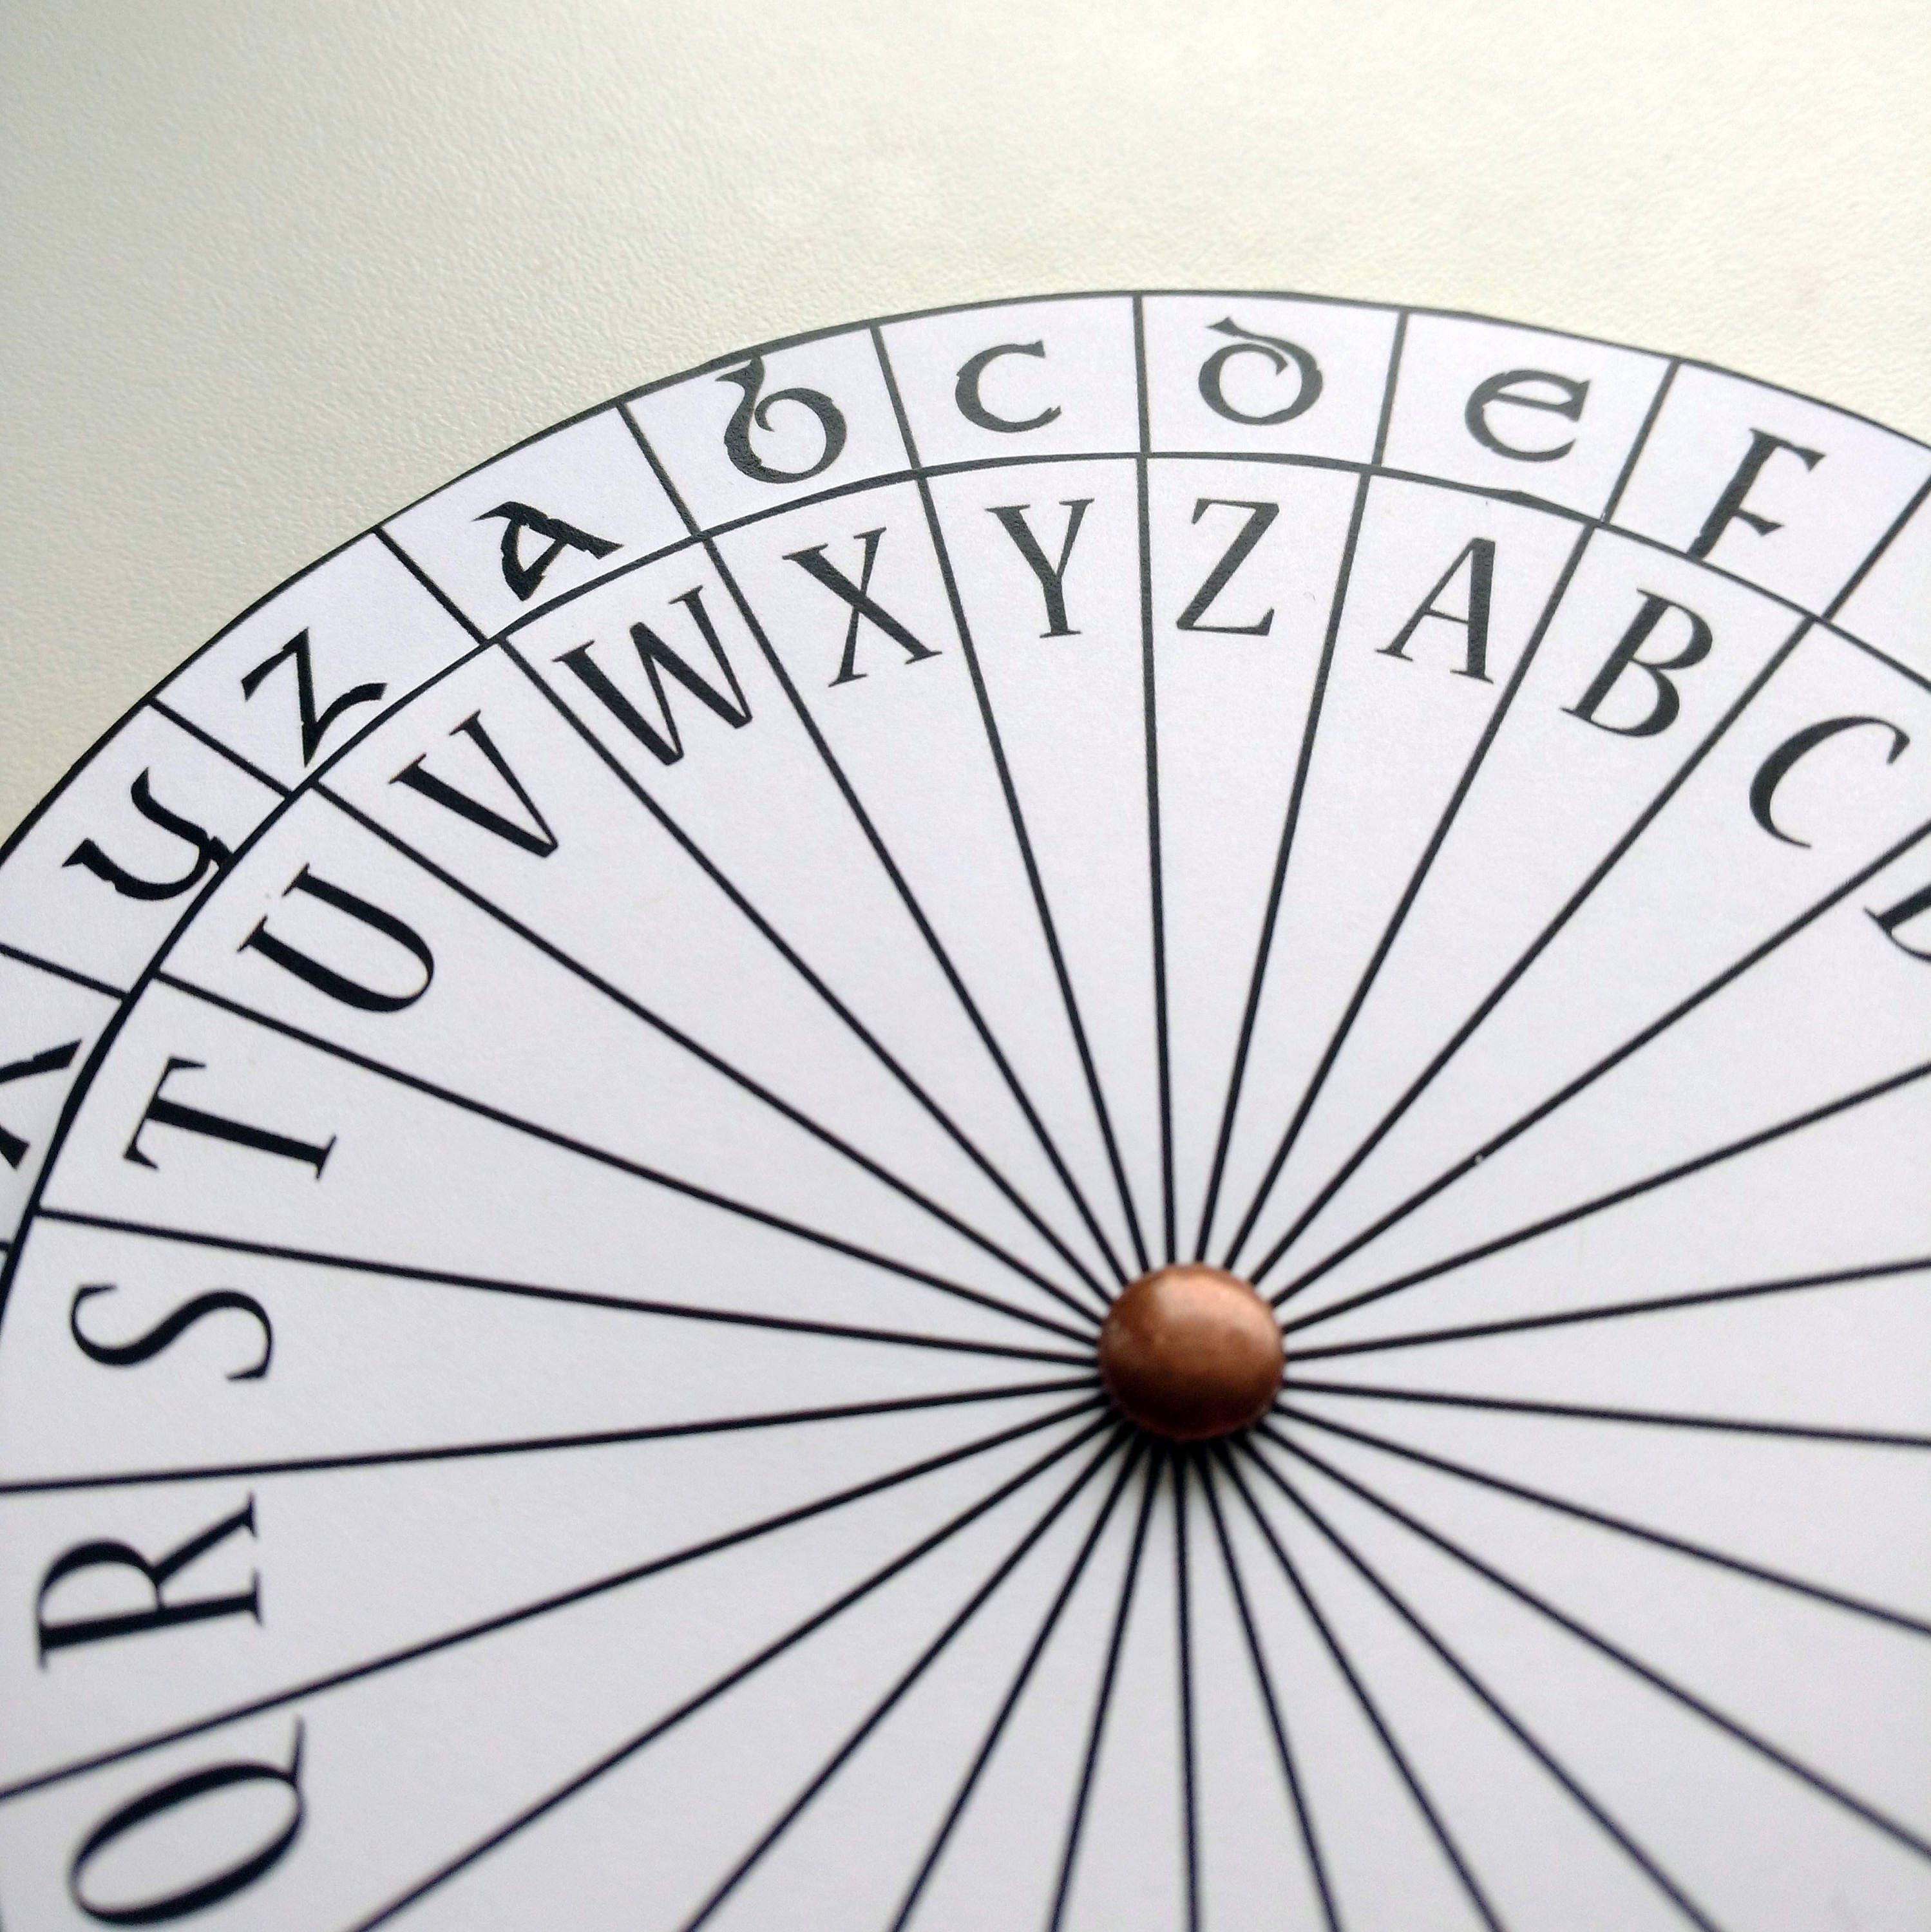 It's just a picture of Insane Printable Cipher Wheel